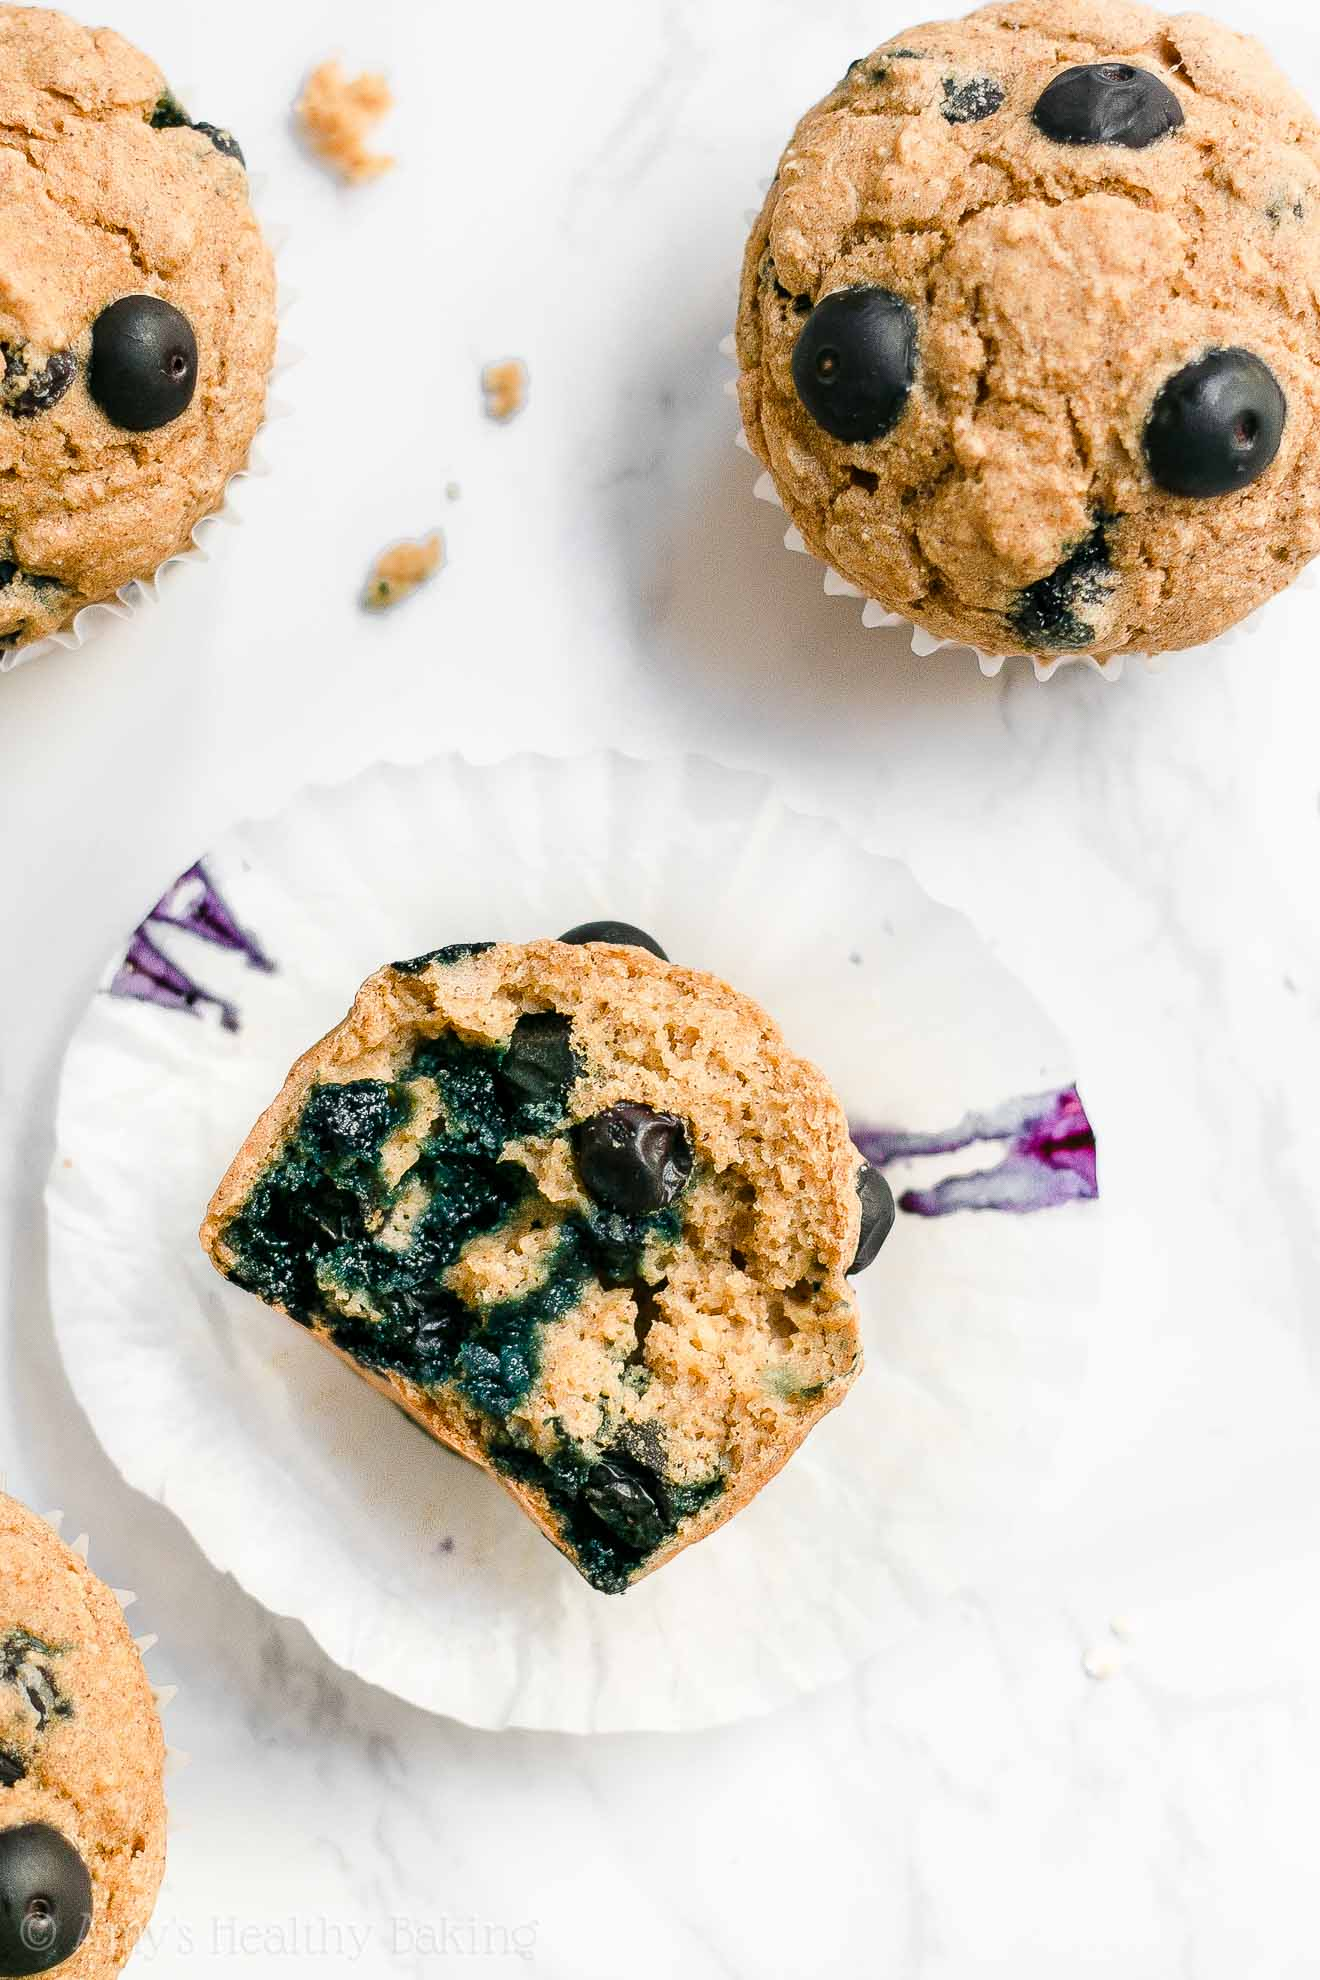 ULTIMATE Healthy Whole Wheat No Sugar Blueberry Oatmeal Muffins